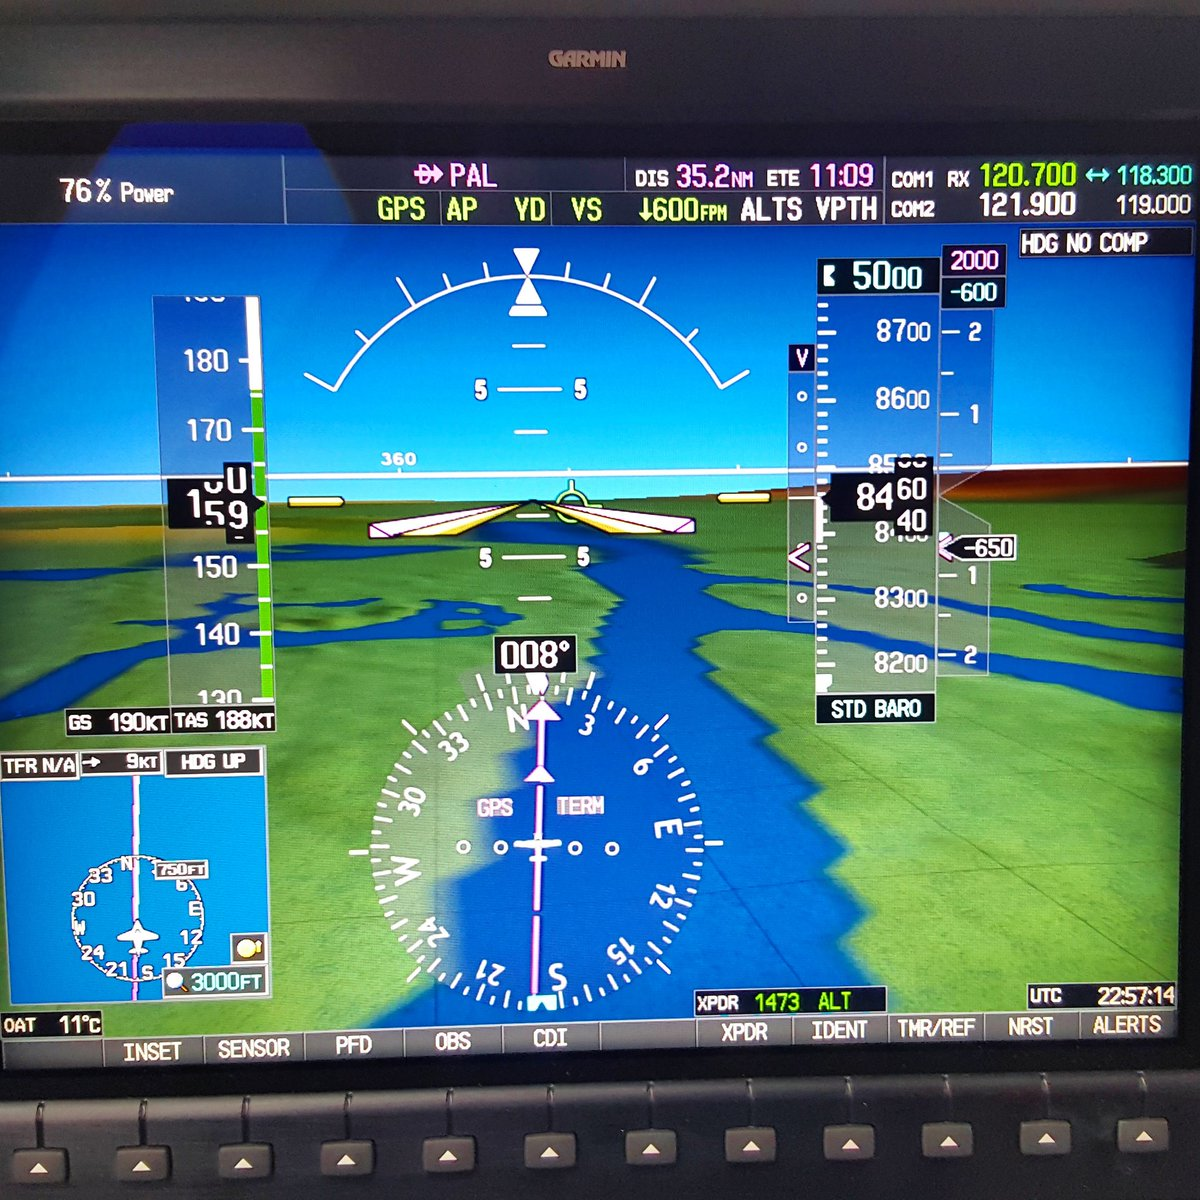 Here we go! Direct to PAL. #training #cirrusaircraft #sr22t #approach #segu #Guayaquil <br>http://pic.twitter.com/Tct6SUfOGC